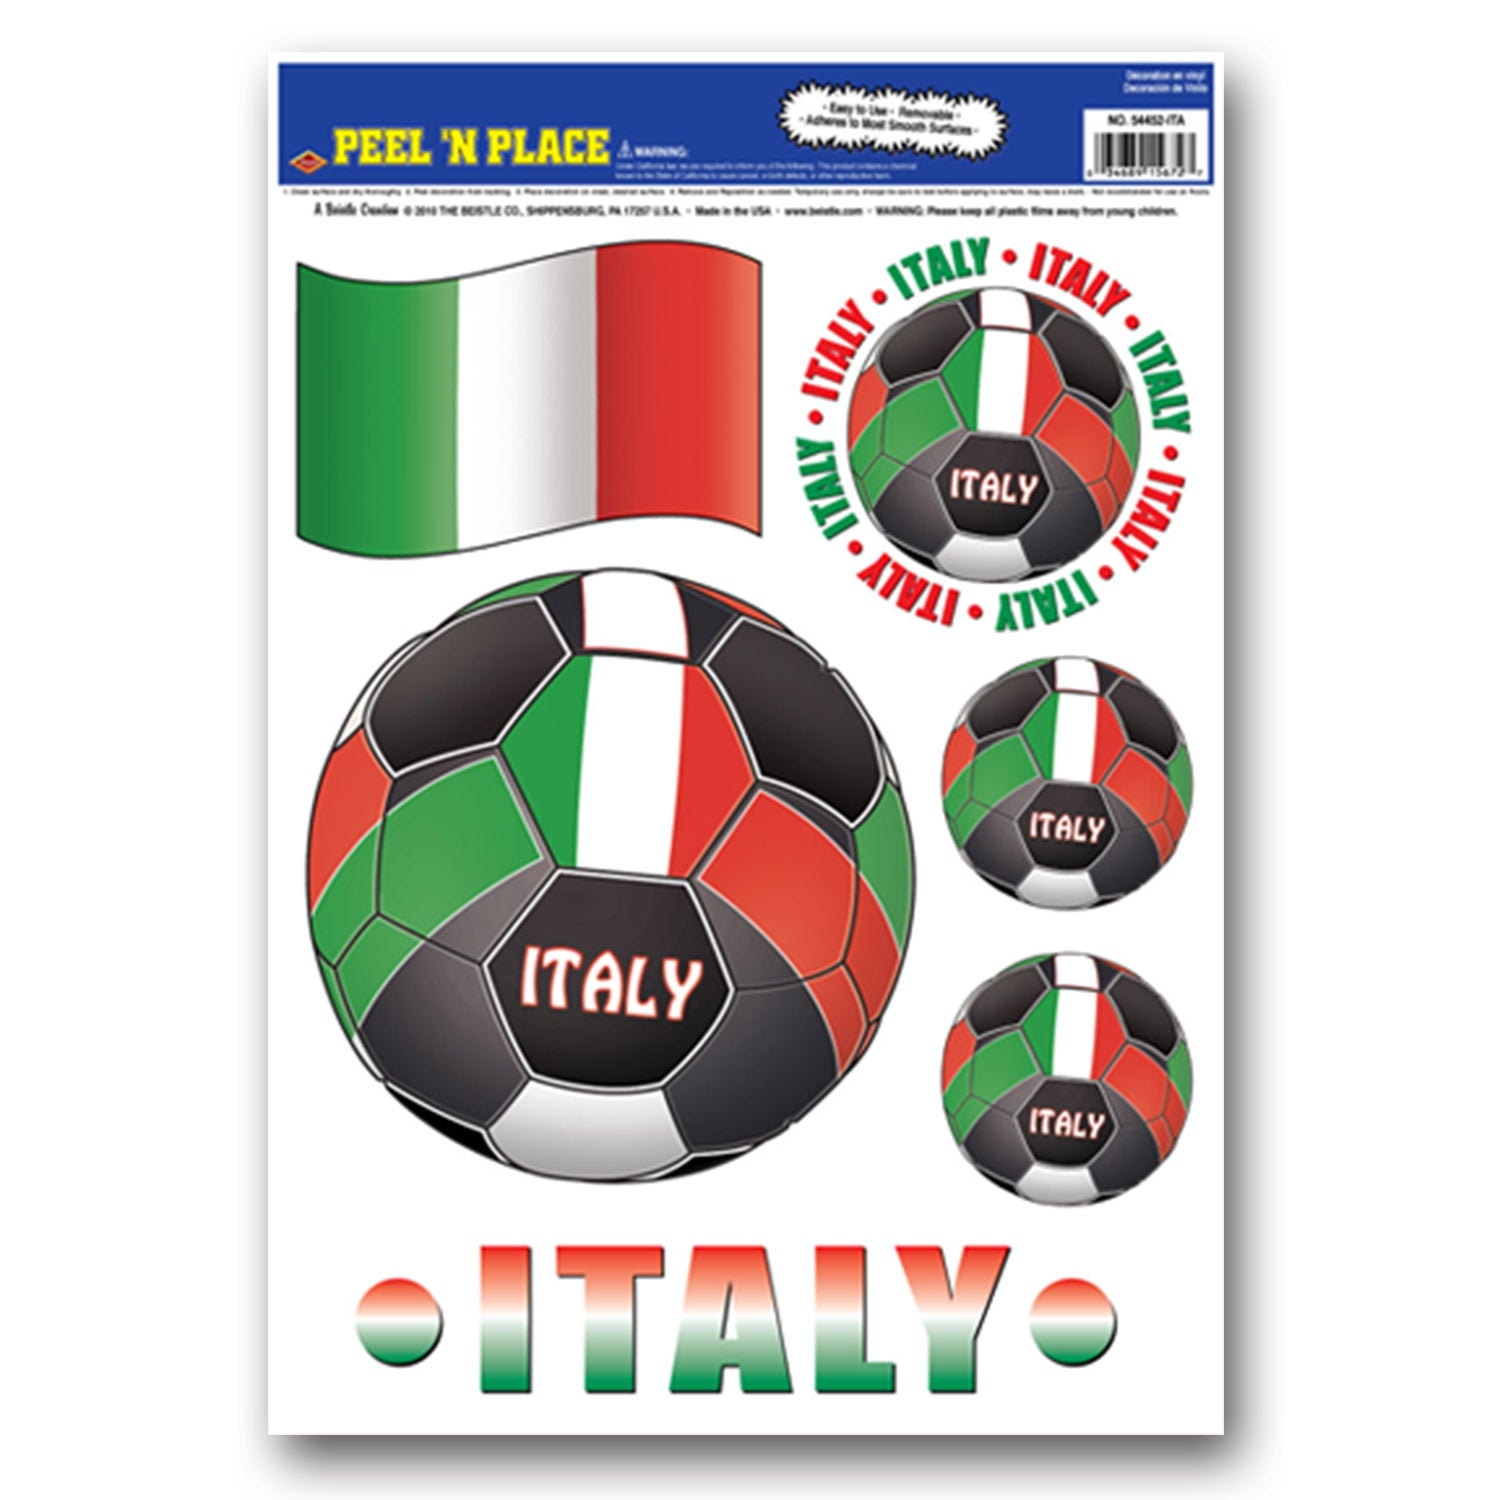 Peel 'N Place - Italy (6/Sheet) by Beistle - Soccer Theme Decorations